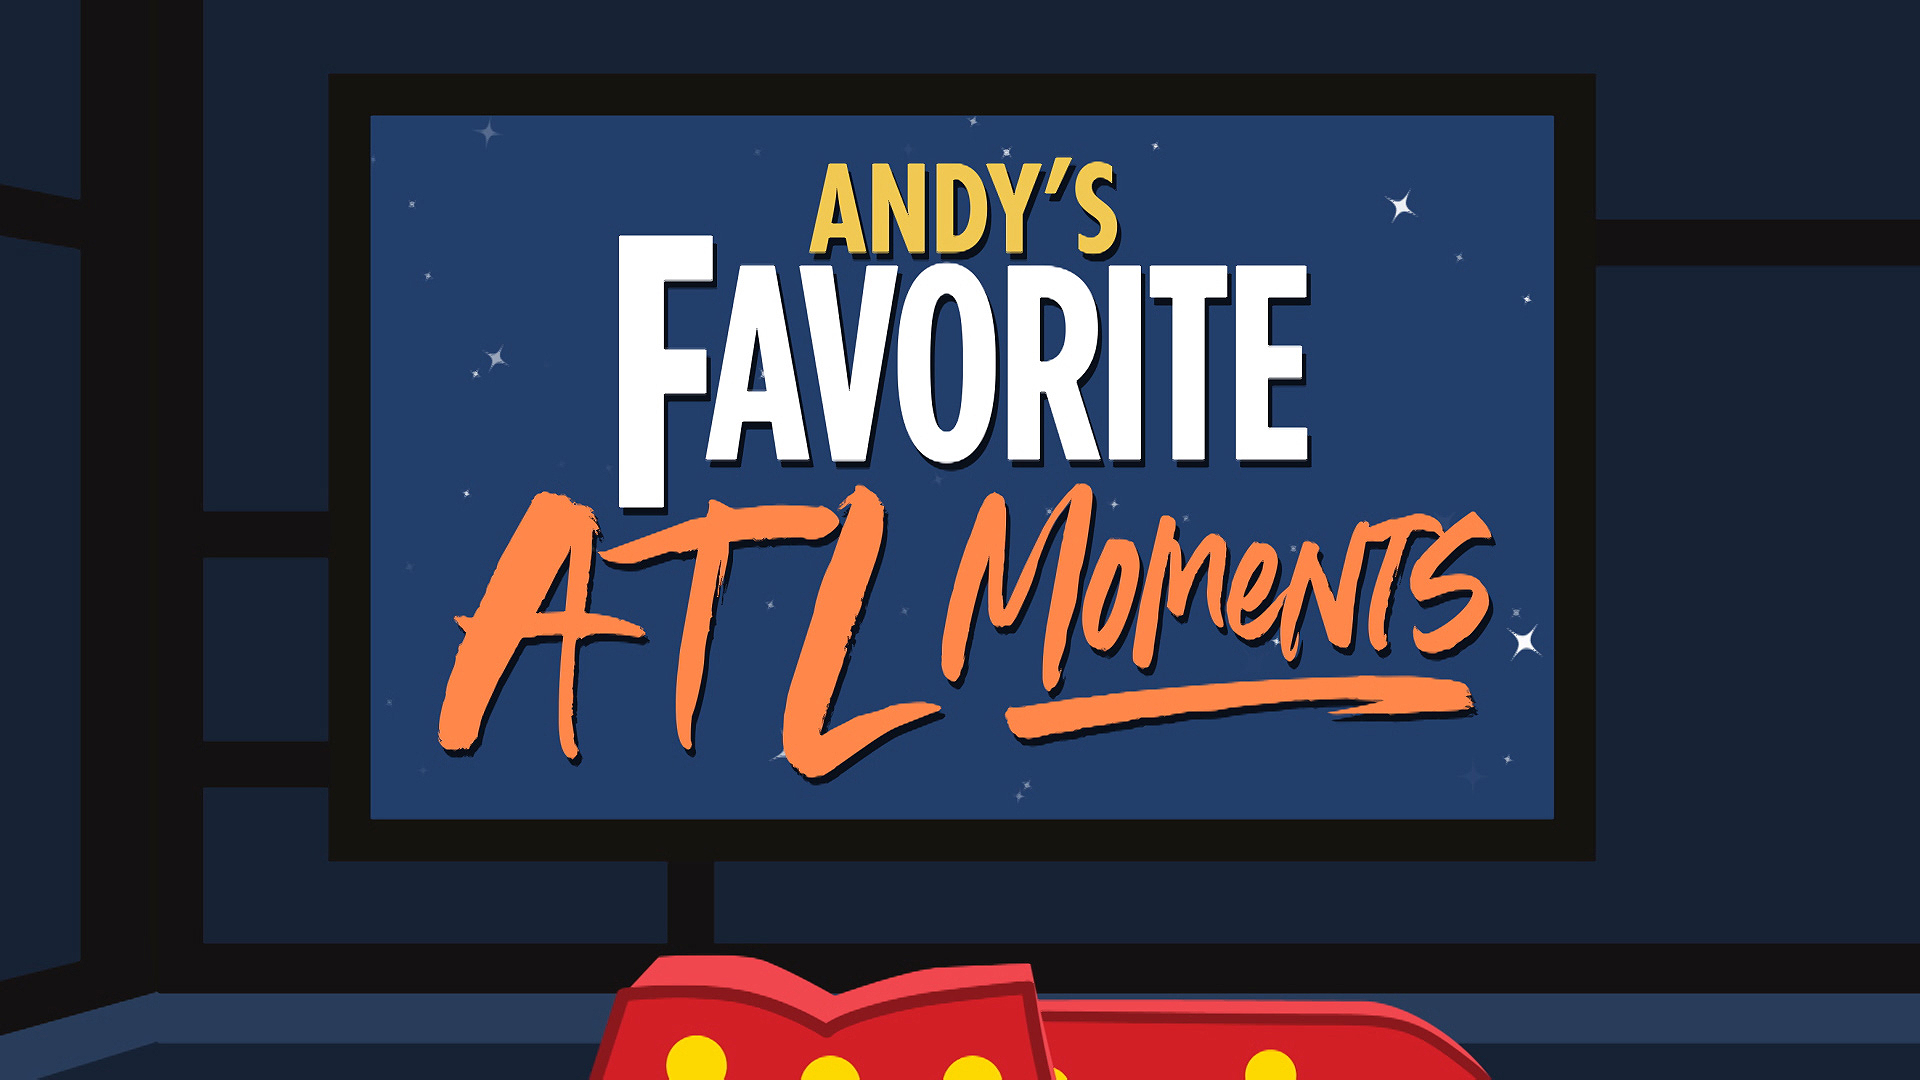 Andy's Favorite ATL Moments